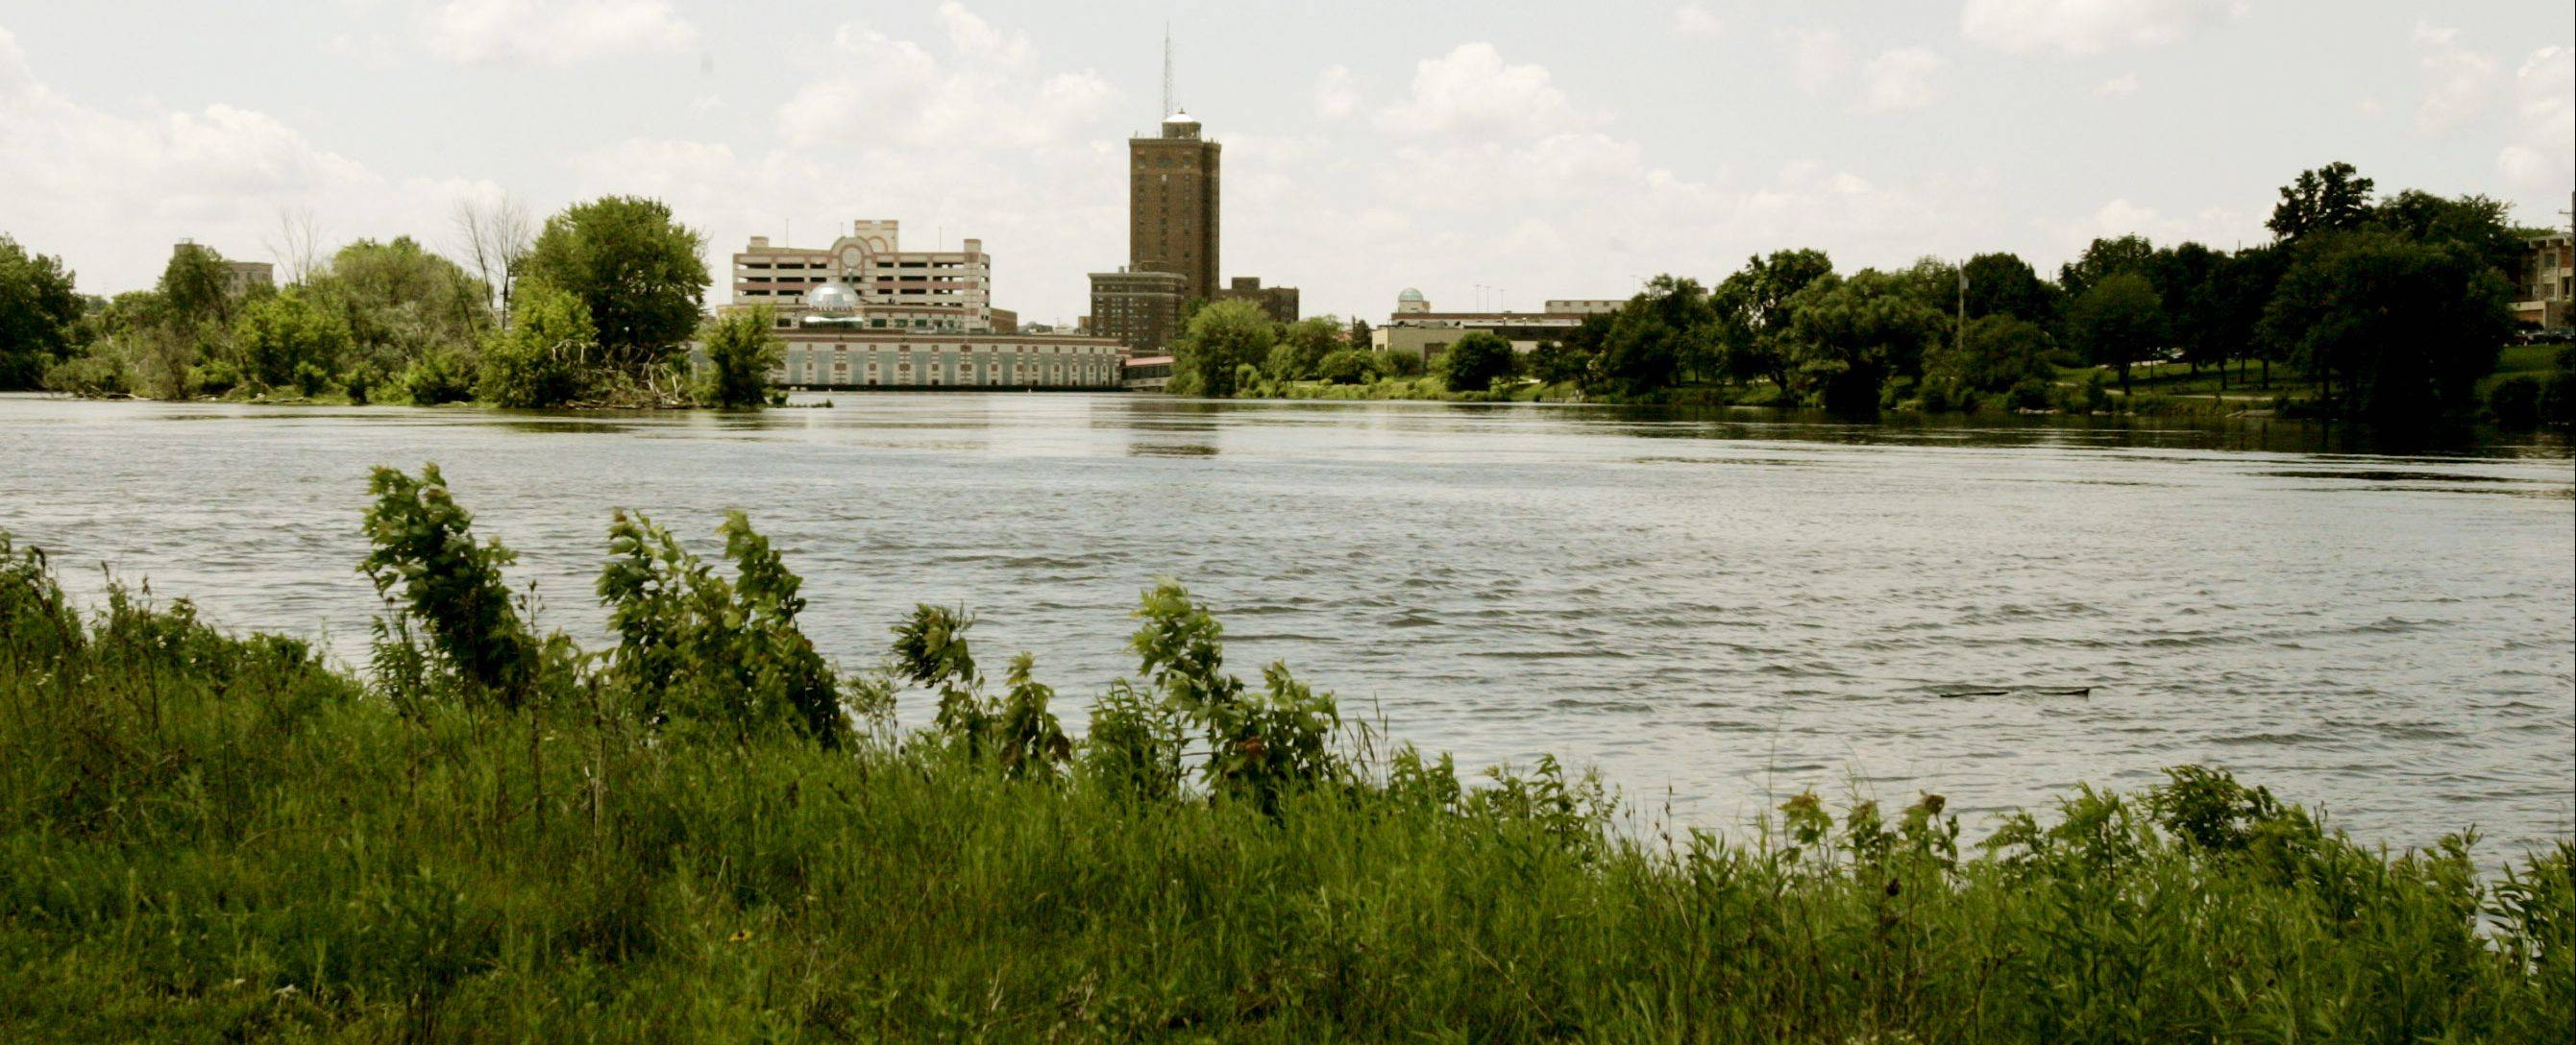 By February 2013, this land along the Fox River on North Broadway Avenue in Aurora will be part of RiverEdge Park.